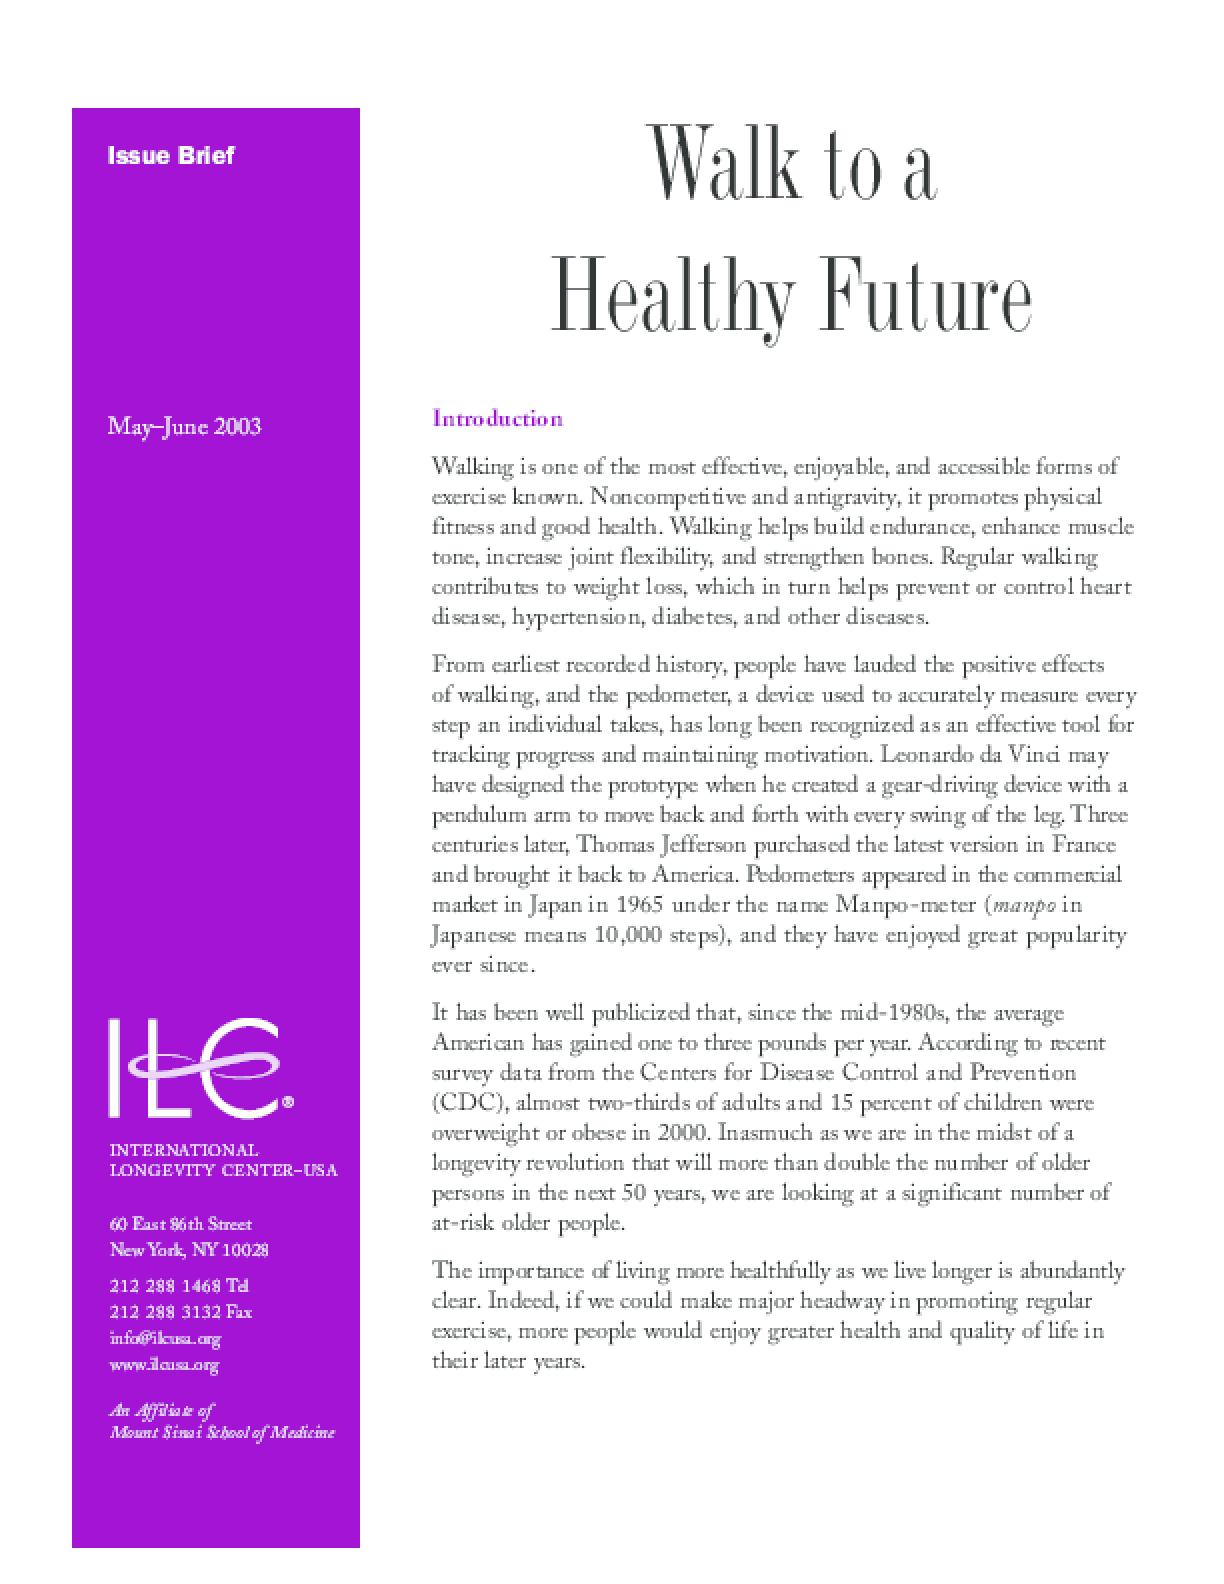 Walk to a Healthy Future